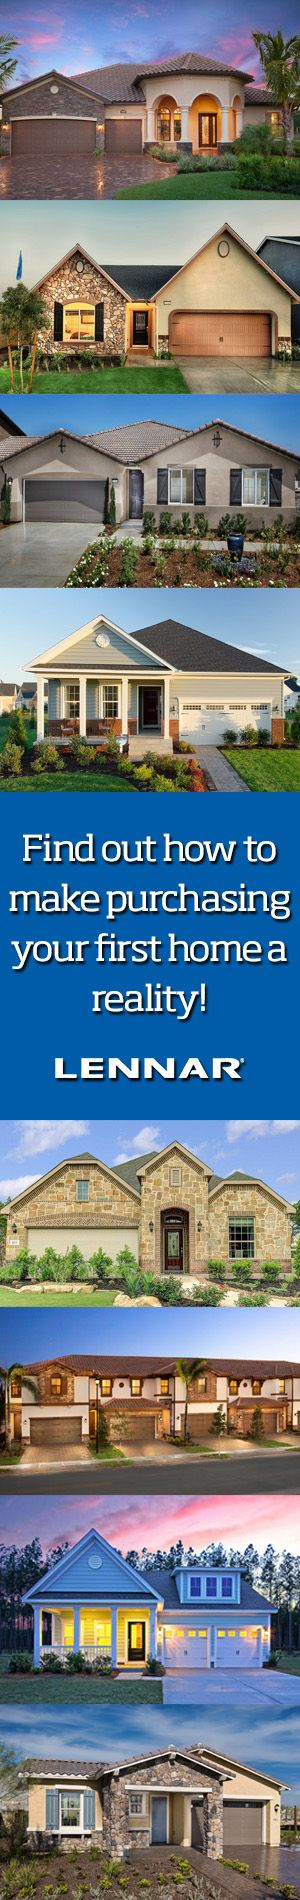 Buying a first home is a momentous event everyone should experience. Better still, with Lennar, the home buying process has never been simpler. So stop hunting and find your dream home today.